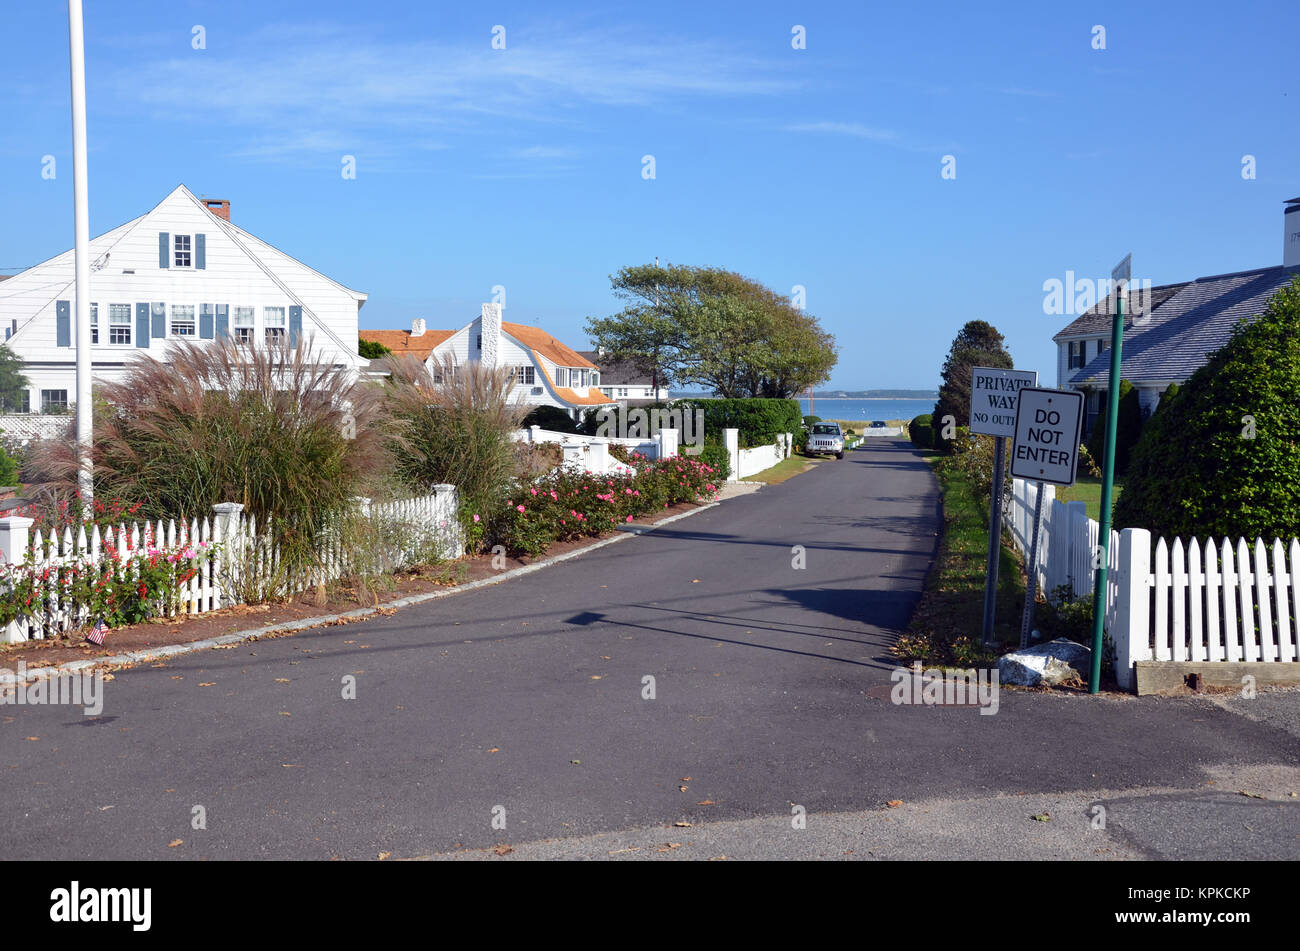 hyannis port 65 ocean ave, hyannis port, ma is a 4446 sq ft 5 bed, 45 bath home sold in hyannis port, massachusetts.